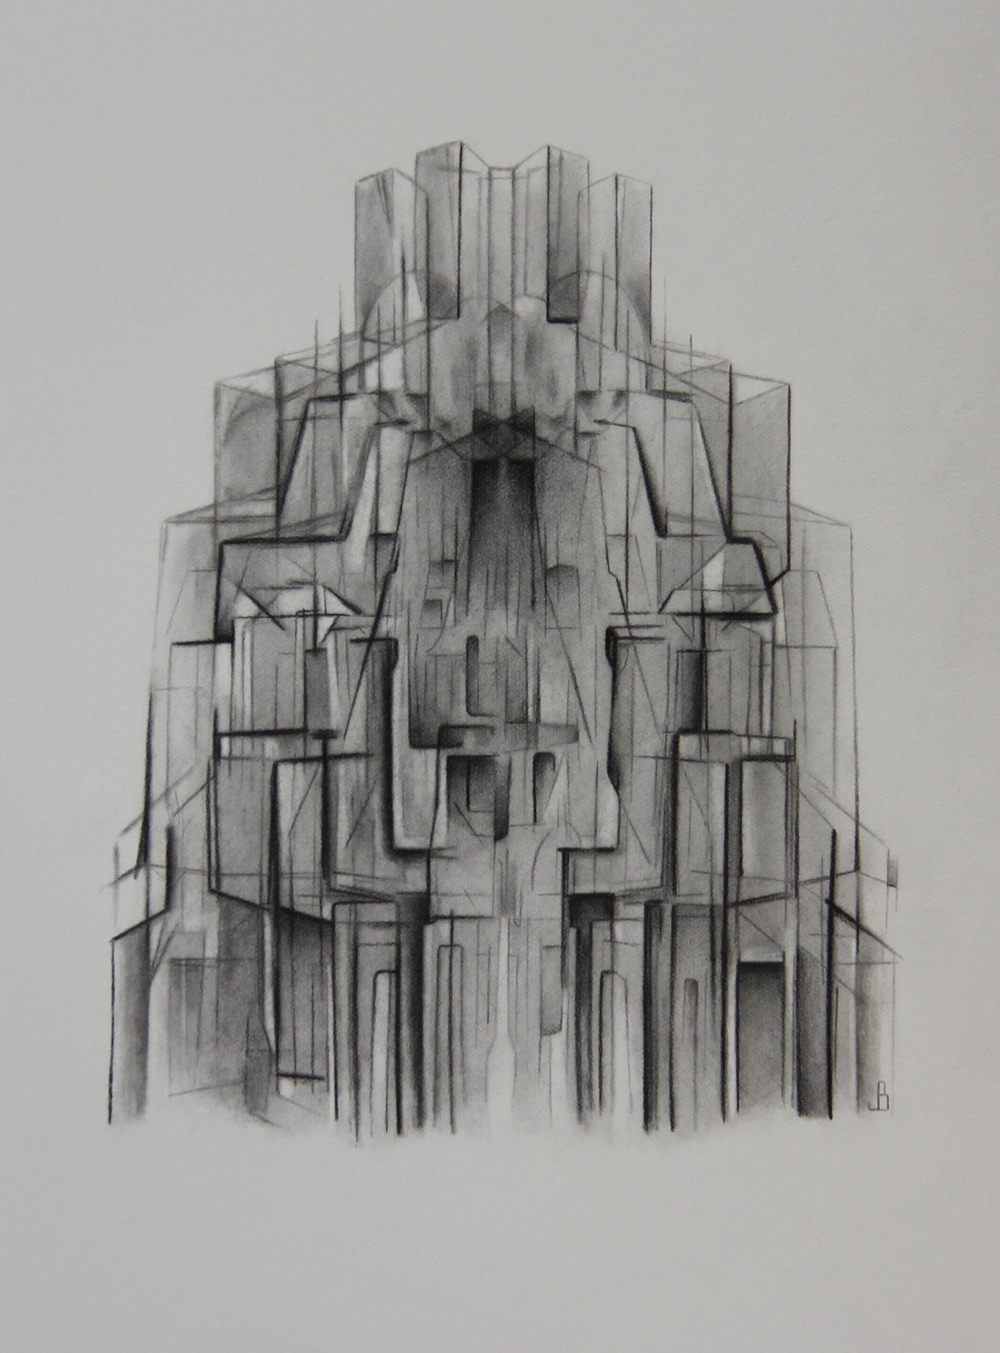 Reassembling - Pencil on Paper (26x36cm)